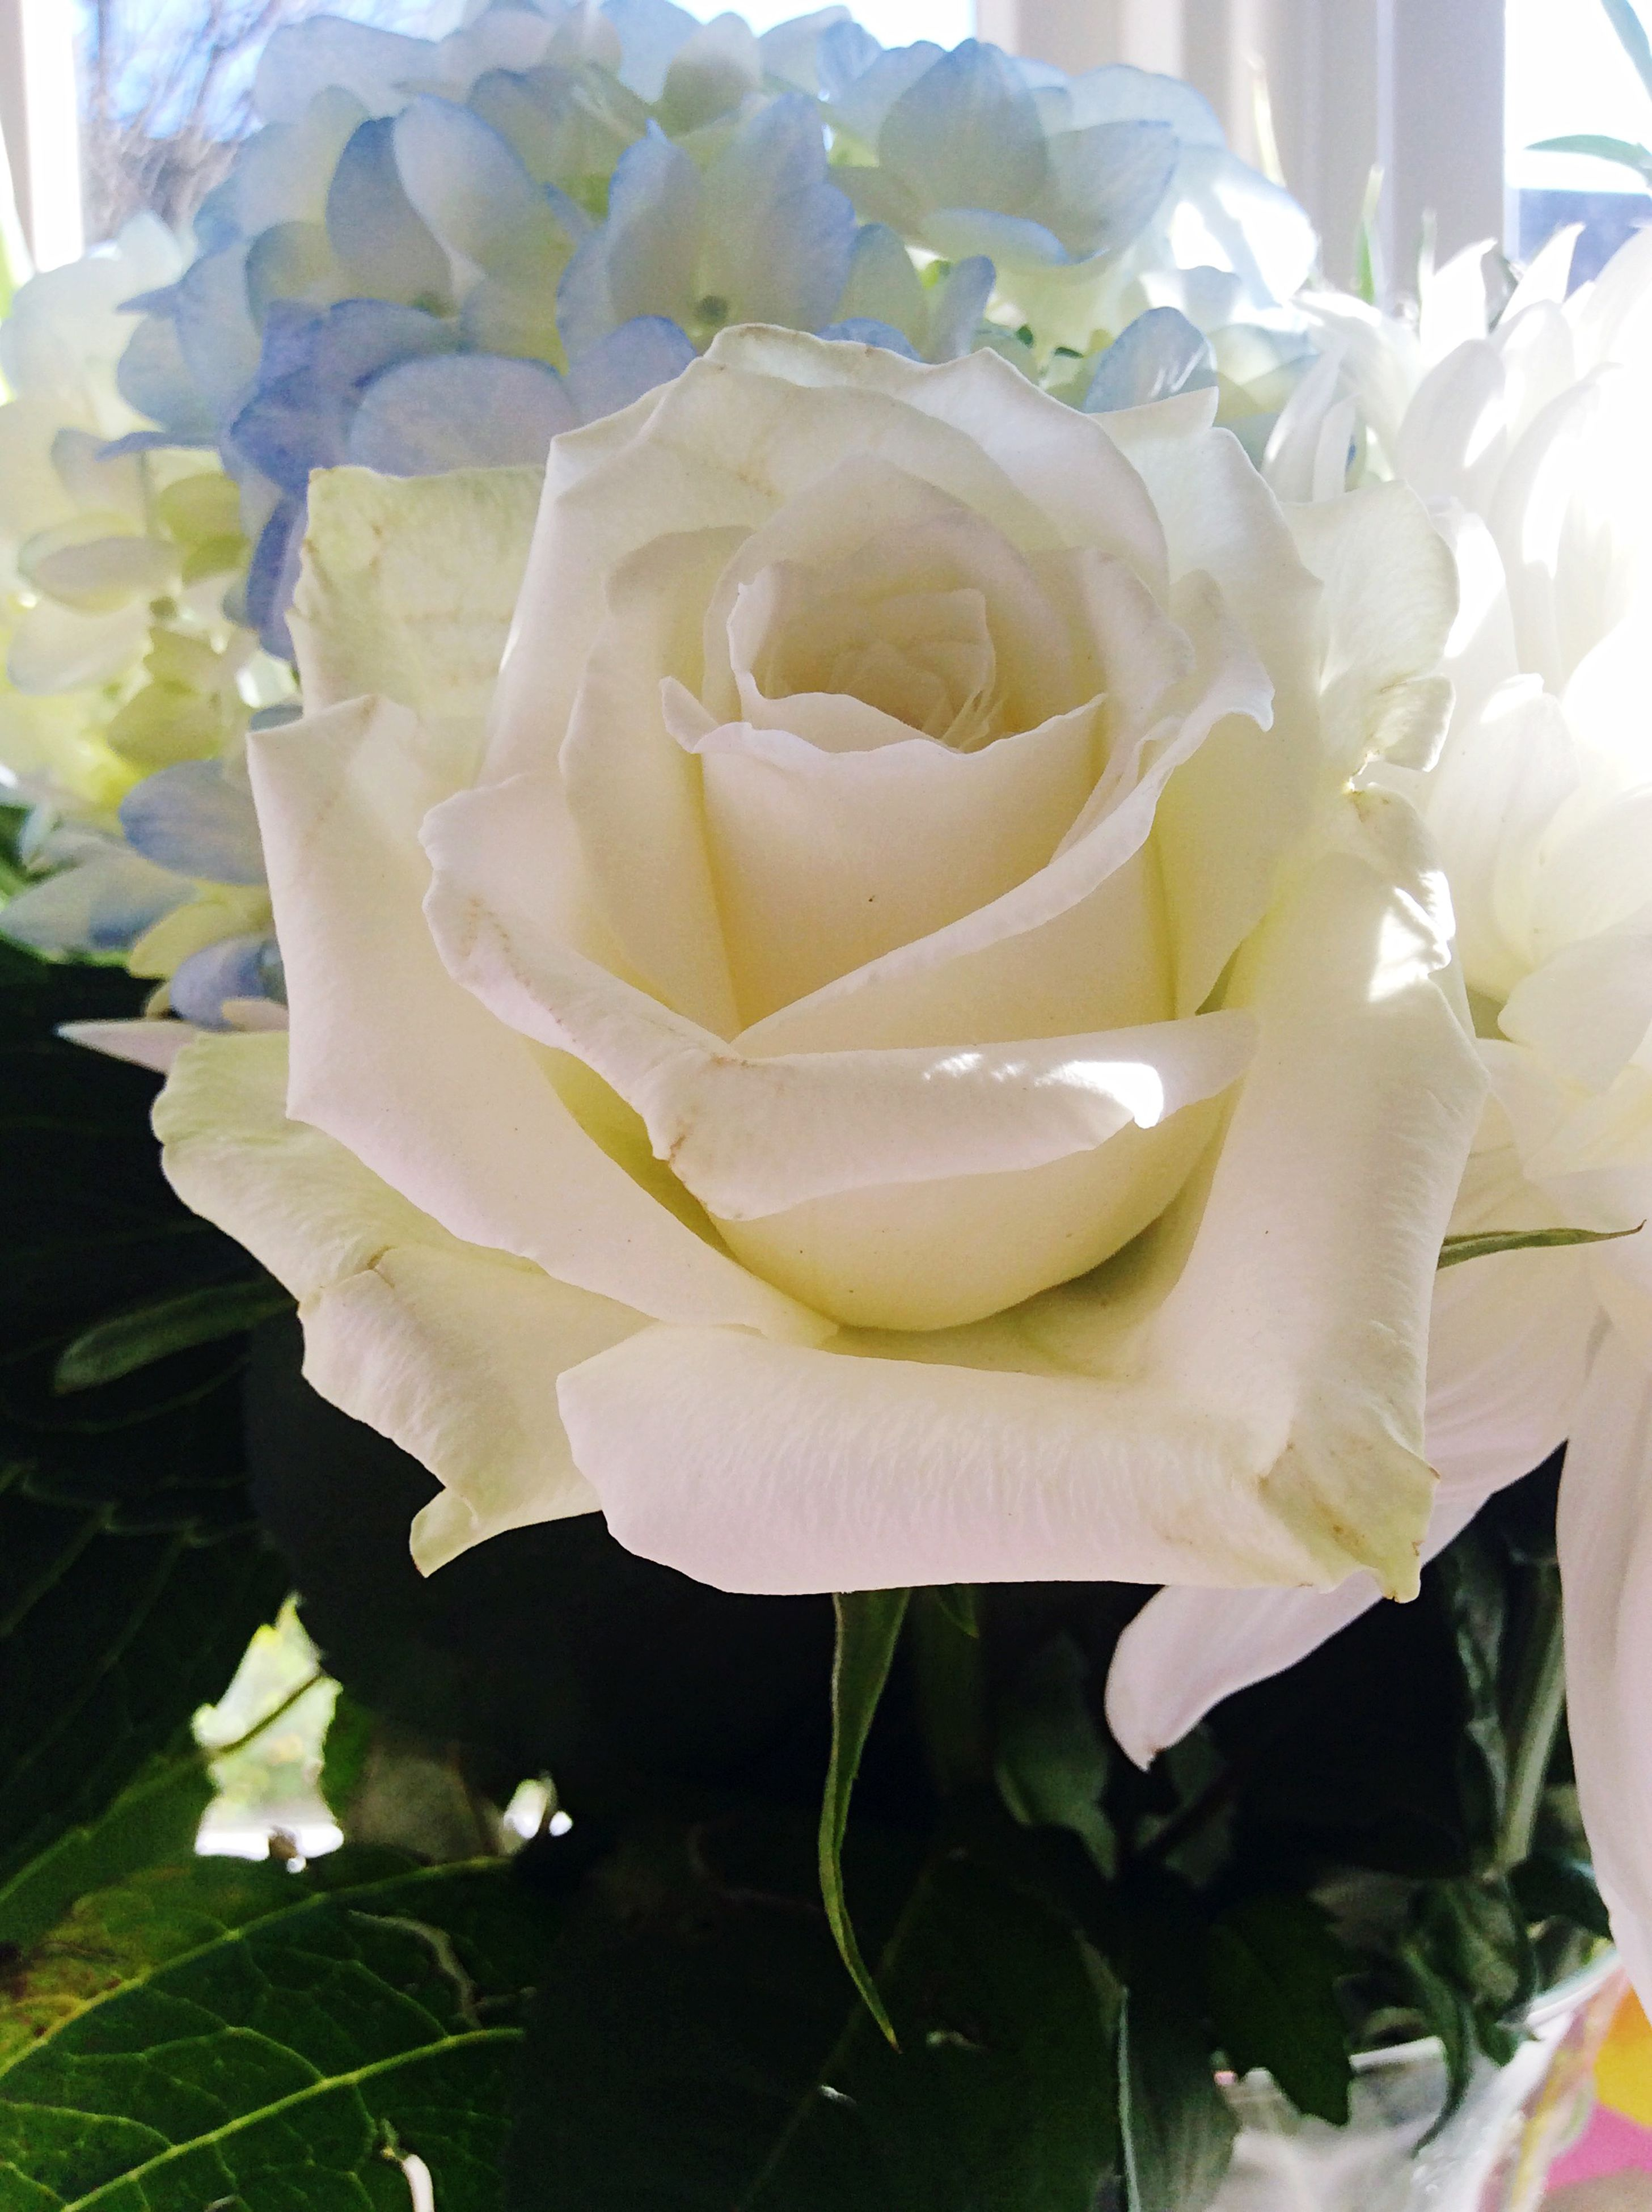 flower, petal, freshness, flower head, fragility, rose - flower, beauty in nature, close-up, growth, blooming, nature, plant, white color, single flower, rose, in bloom, leaf, focus on foreground, single rose, no people